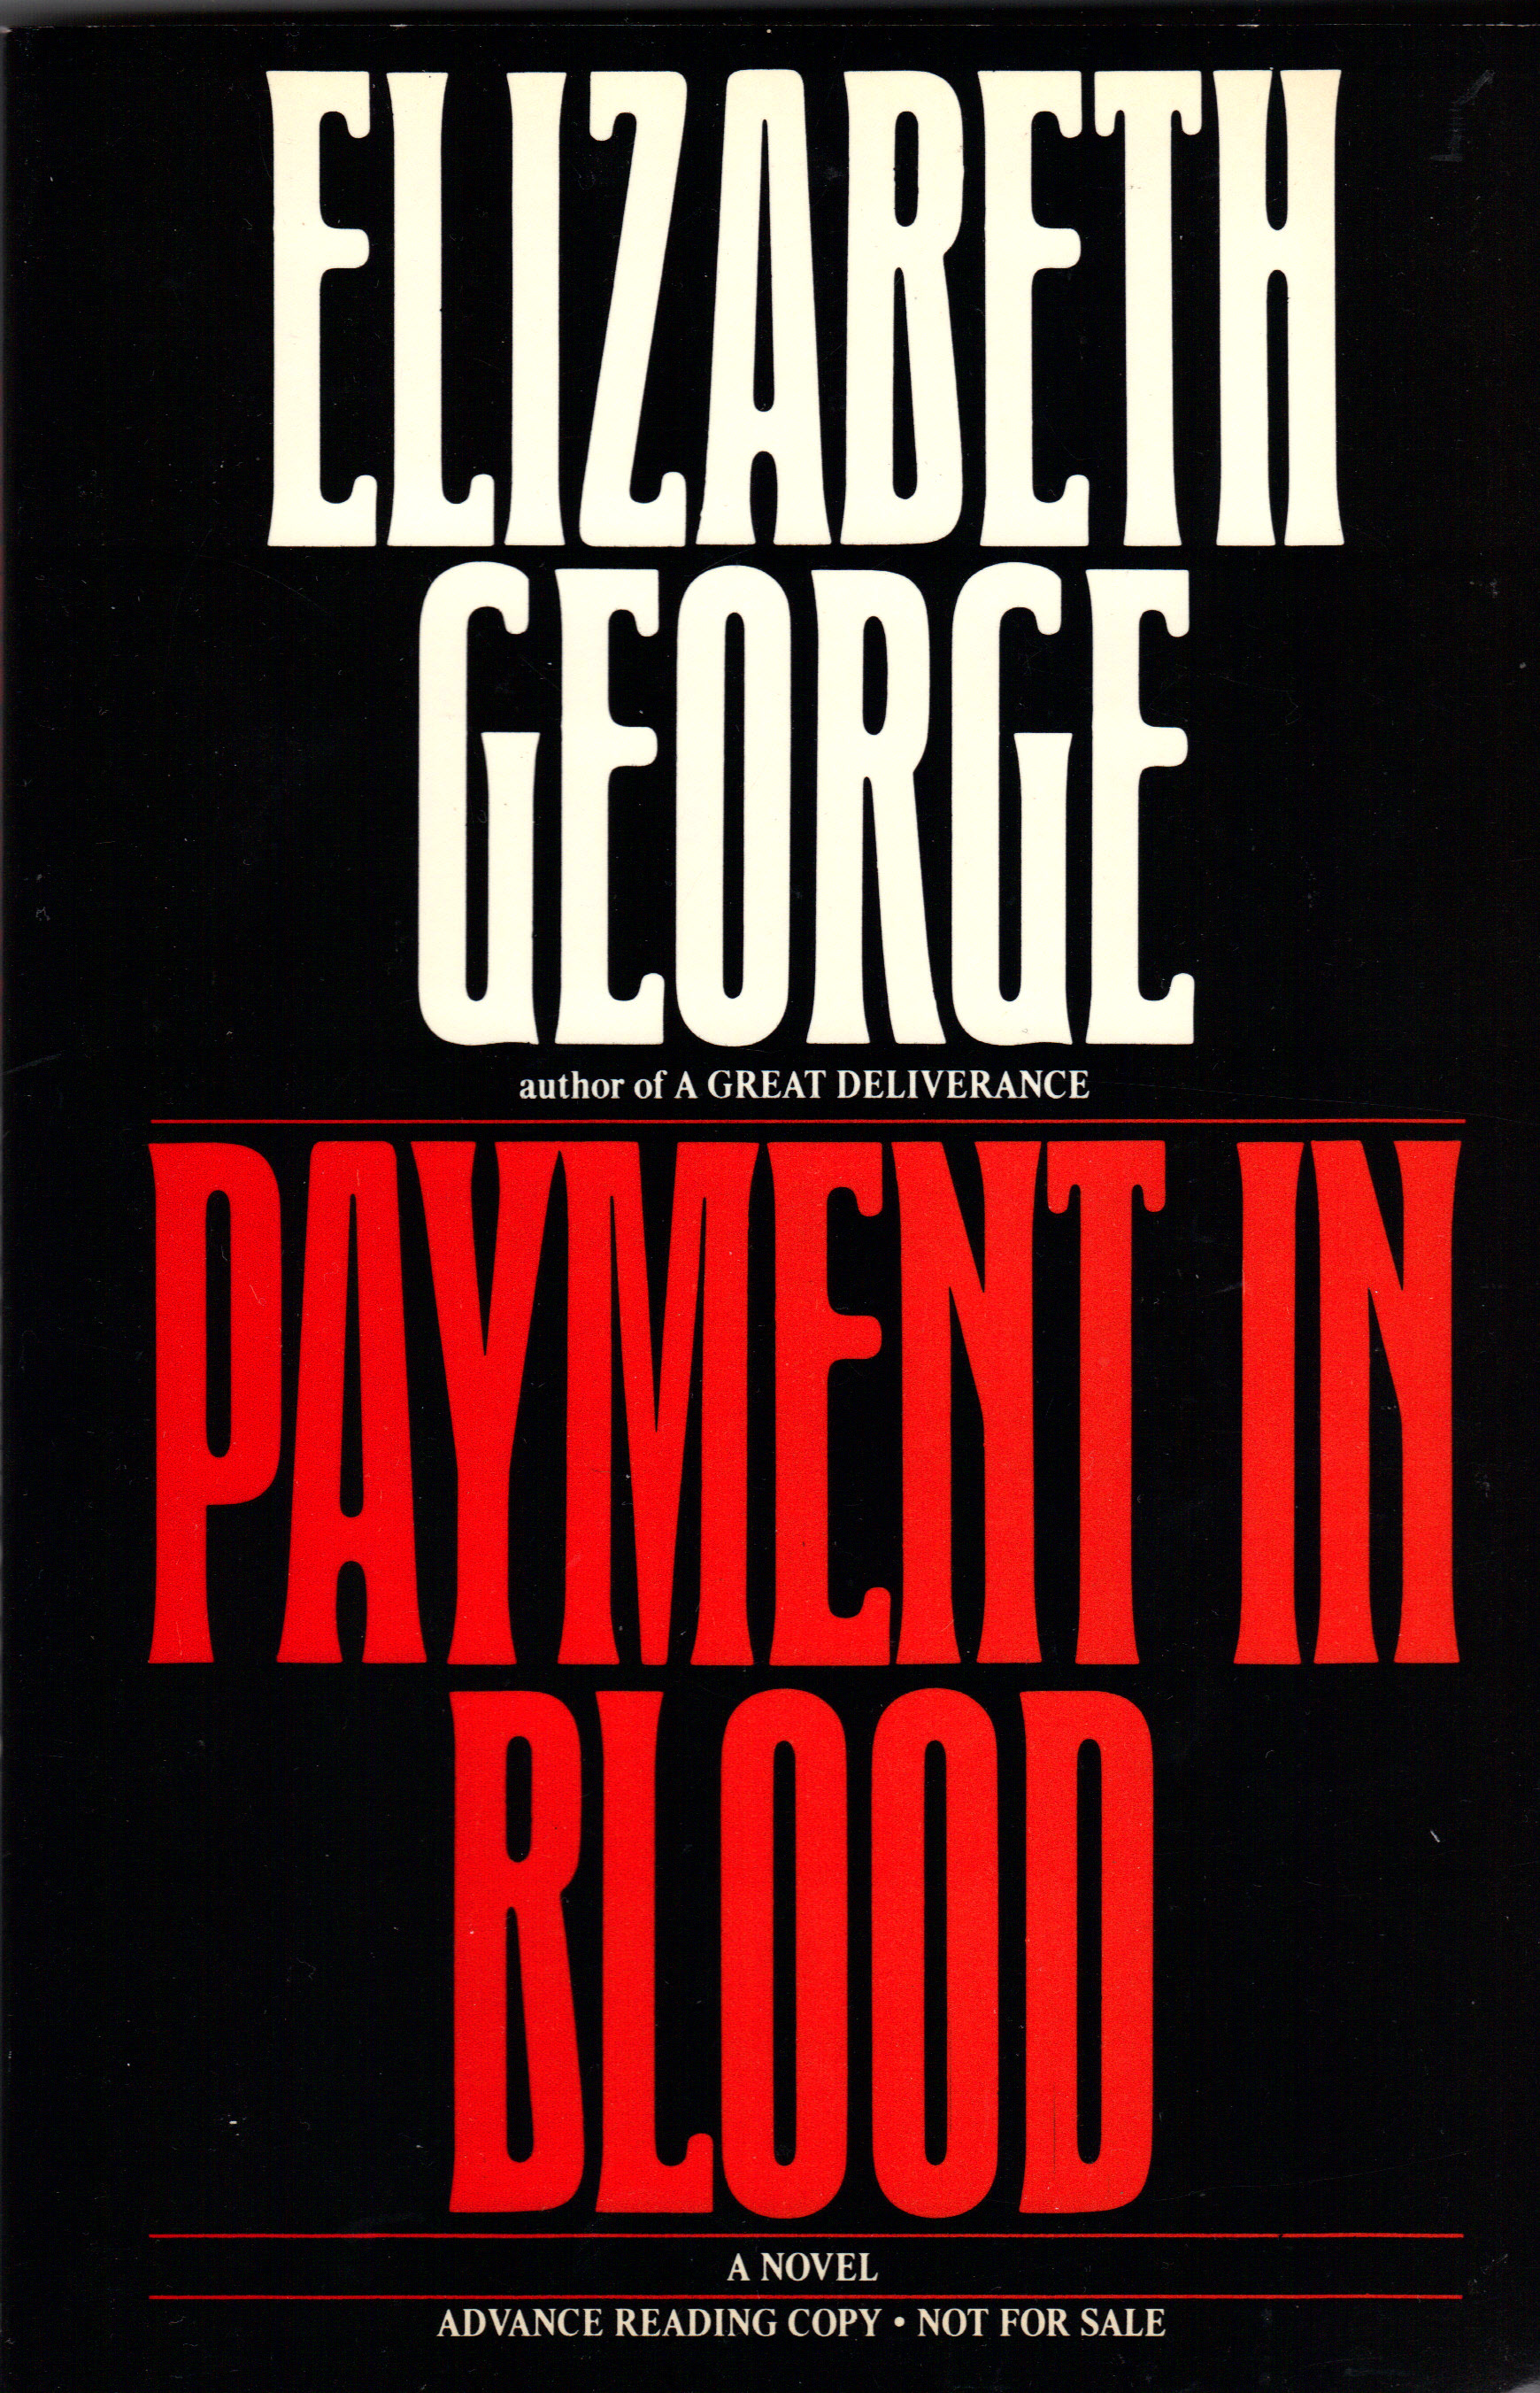 Image for PAYMENT IN BLOOD